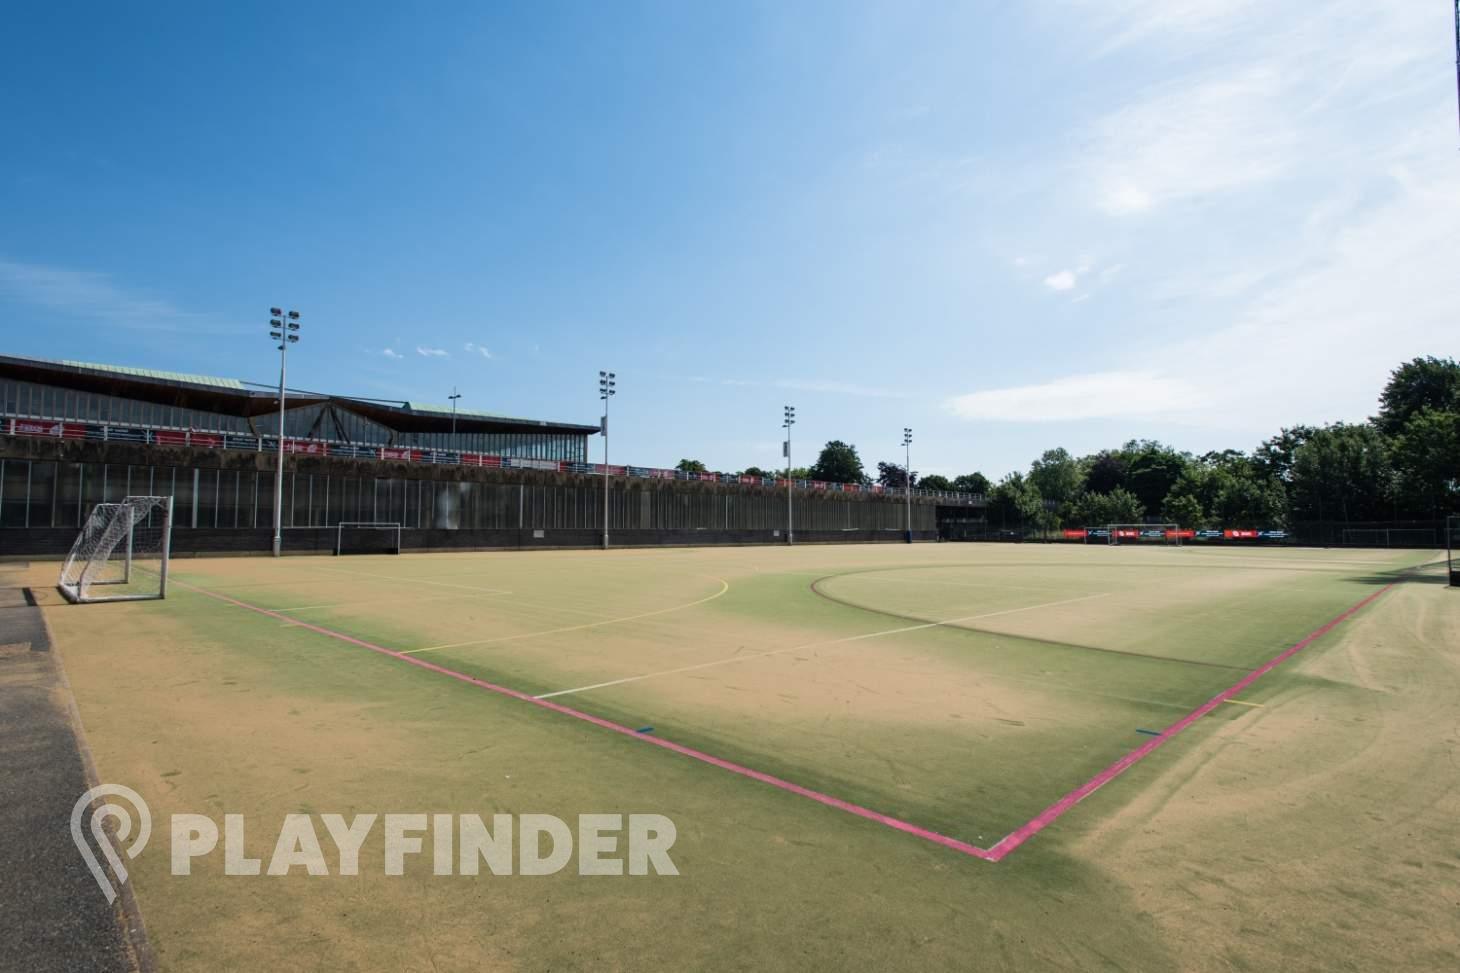 Crystal Palace National Sports Centre Outdoor | Astroturf hockey pitch